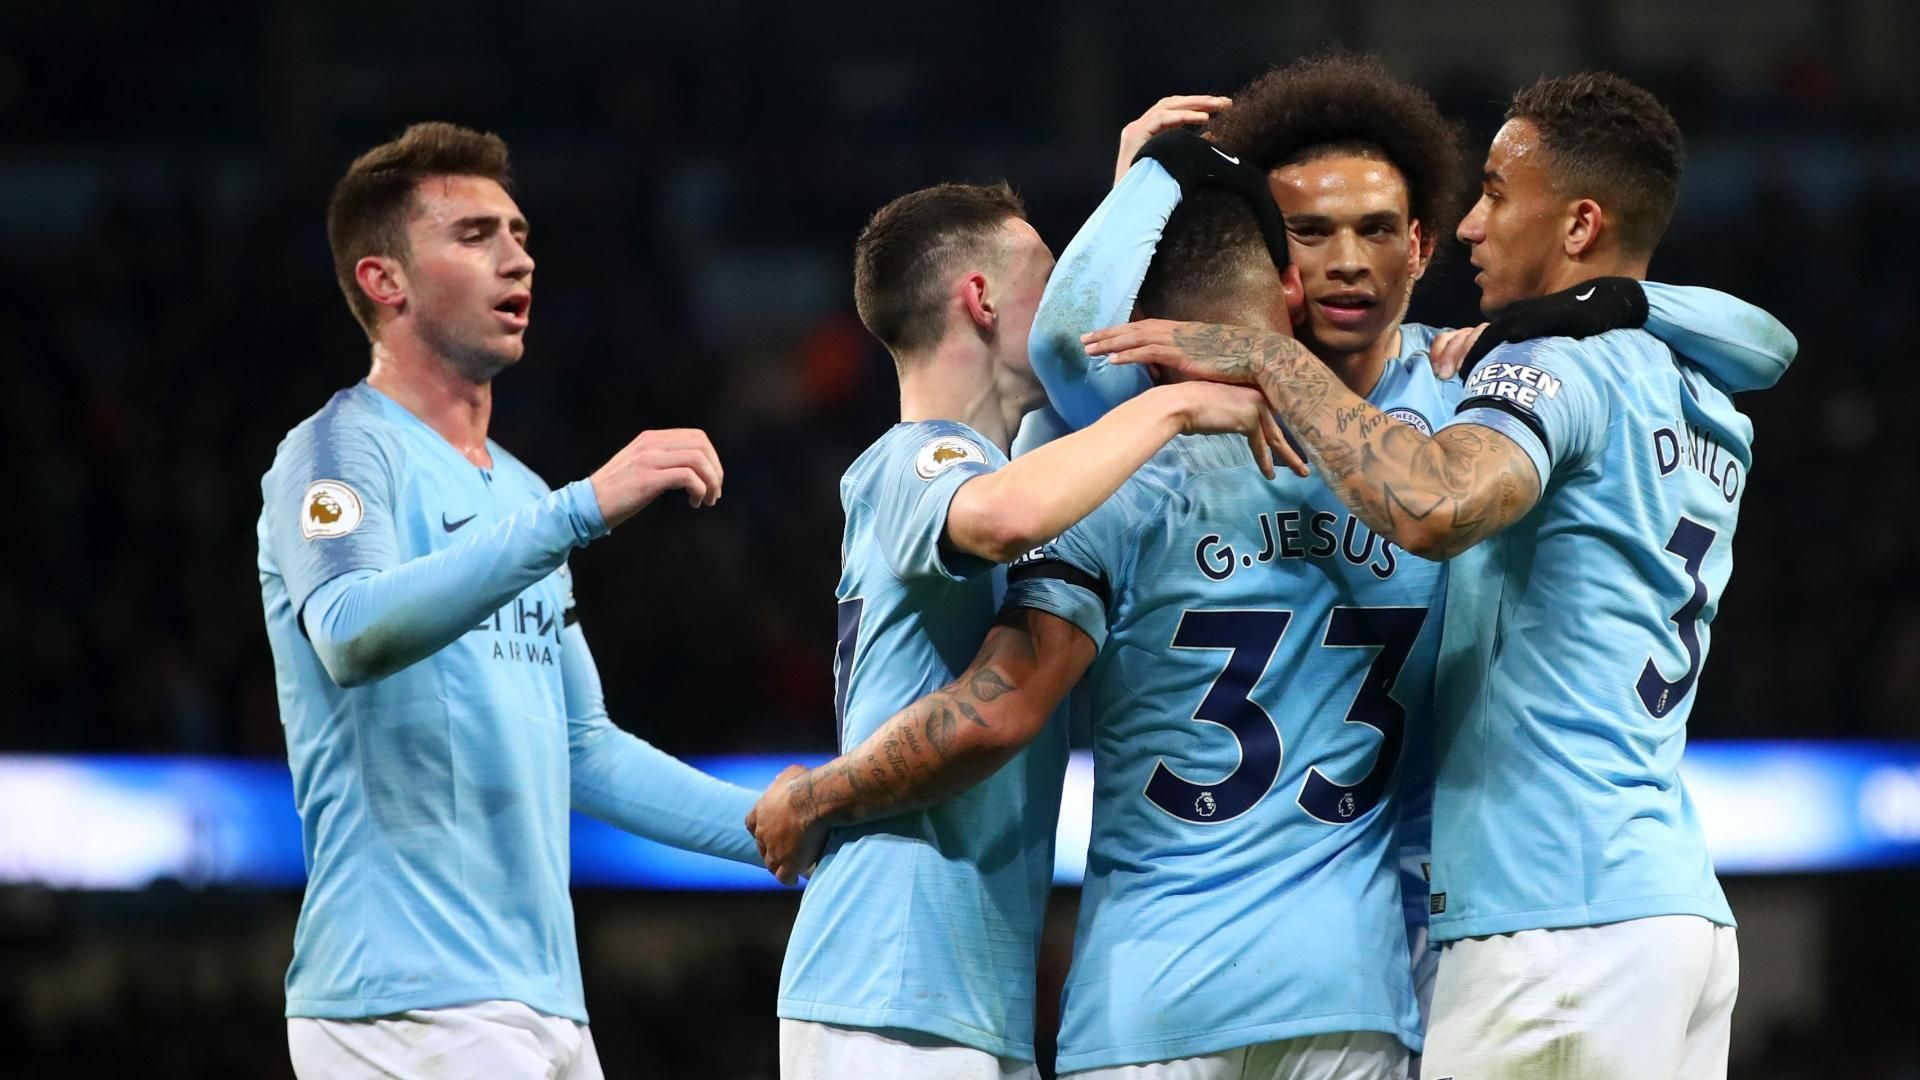 Manchester City's Sterling arranges FA Cup semifinal tickets 550 for pupils from his old school 4